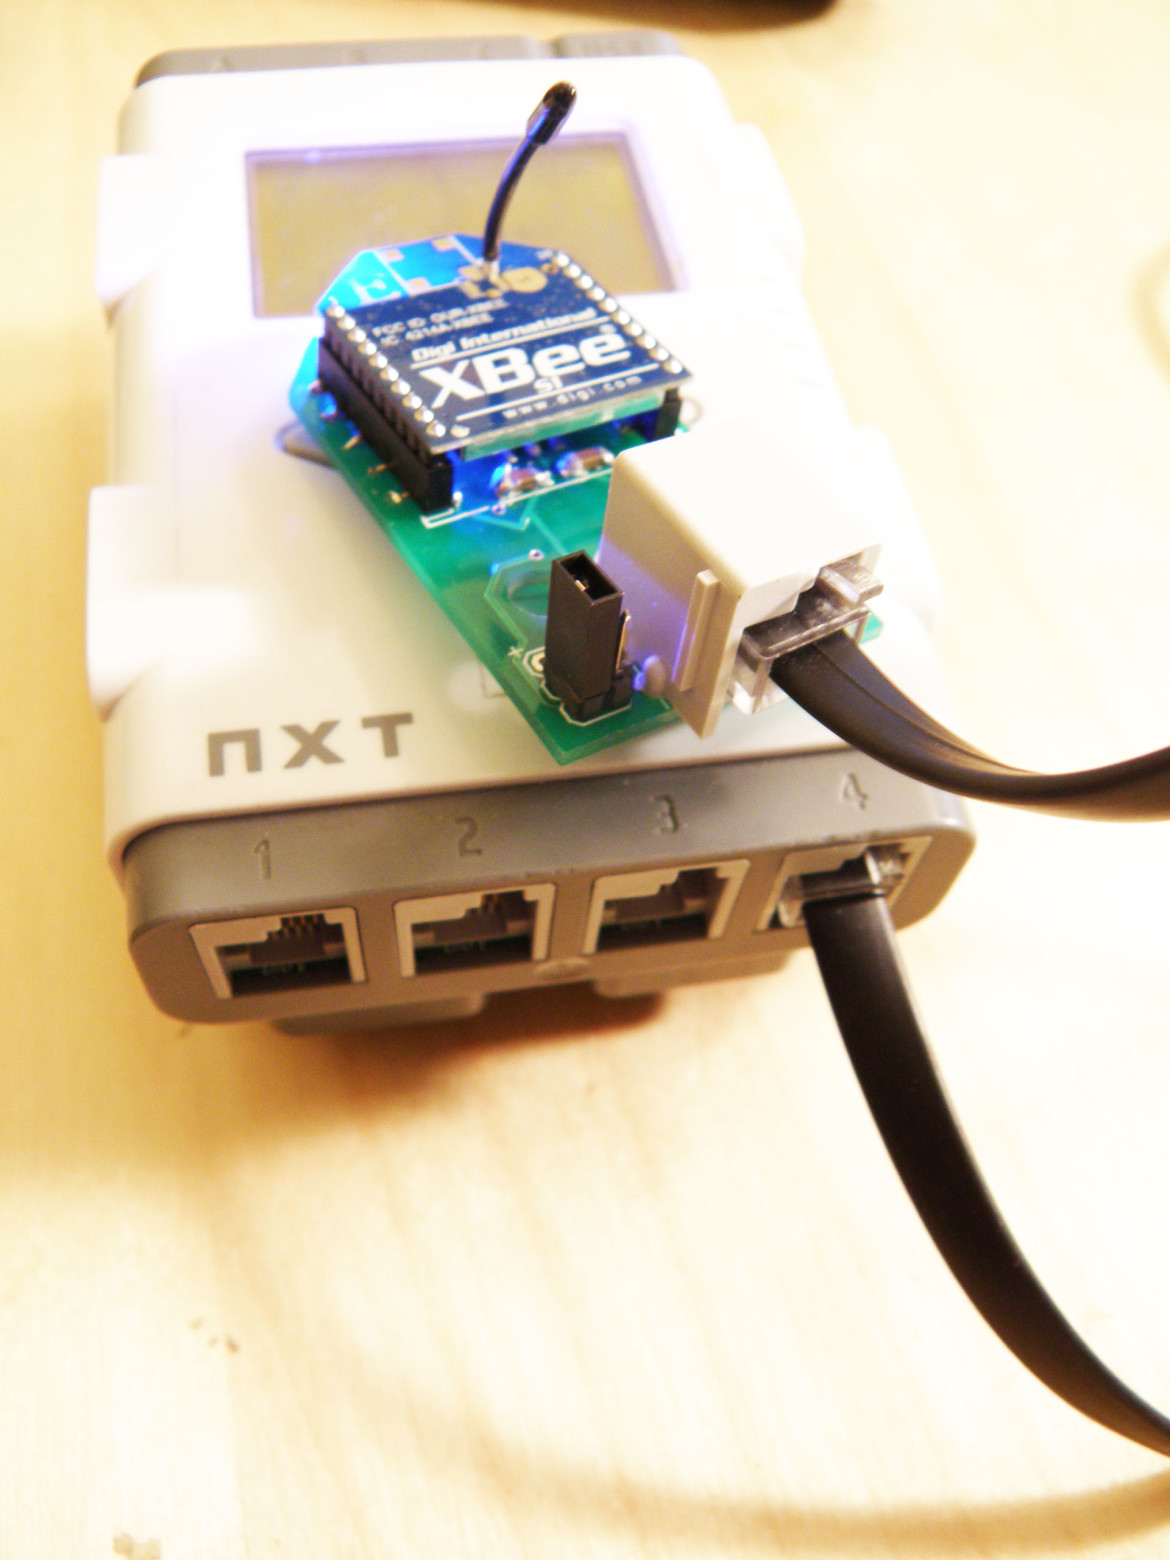 The NXTbee wireless sensor attached to Port 4 on the Lego Mindstorms NXT